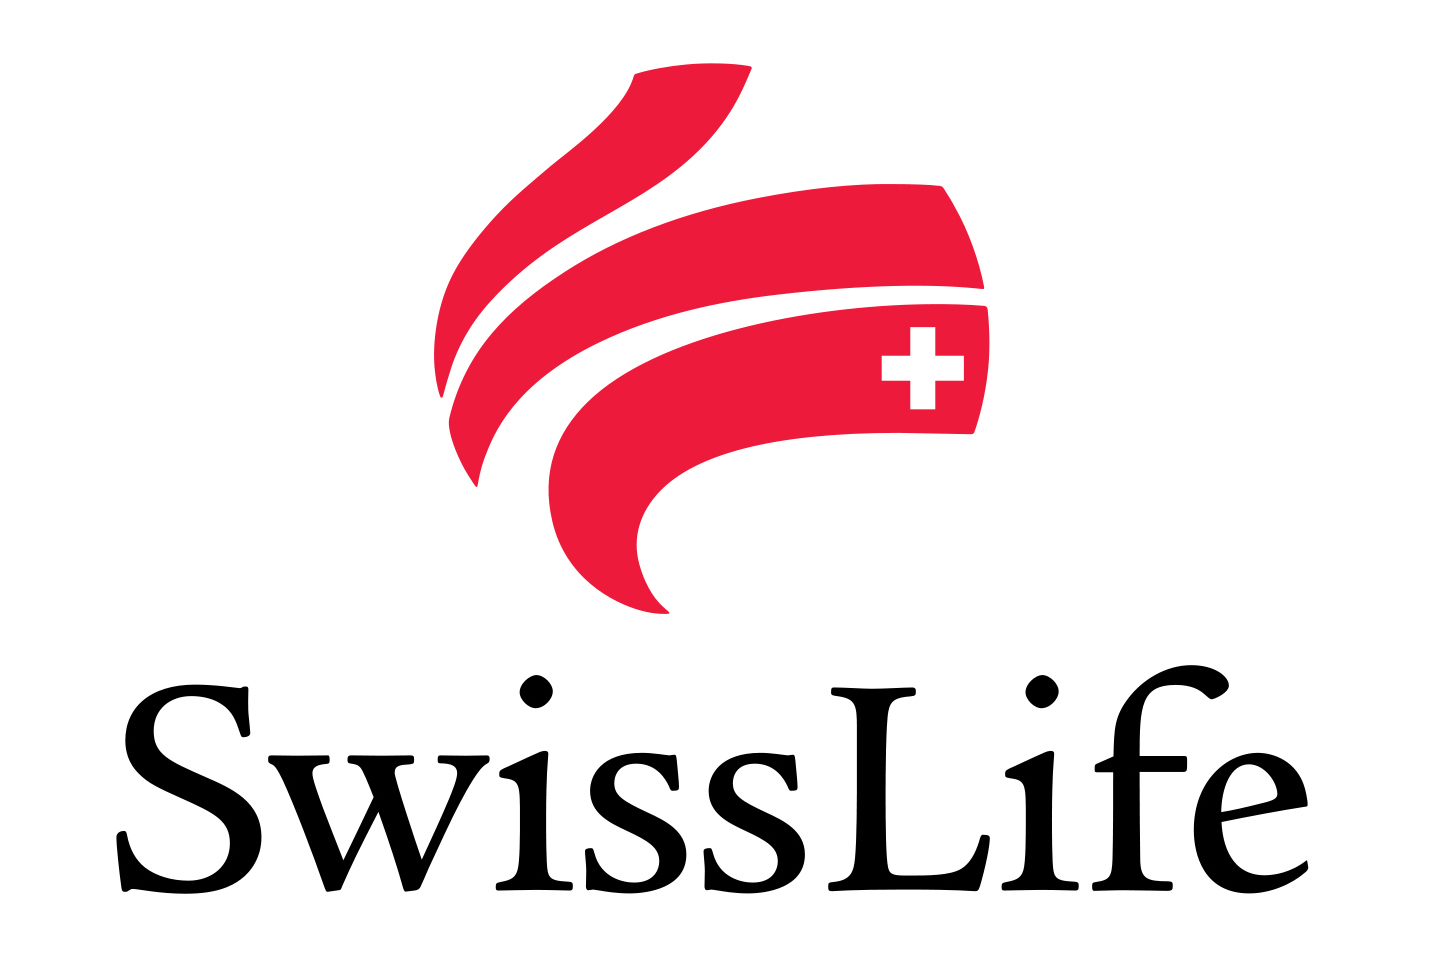 swiss life fincentrum